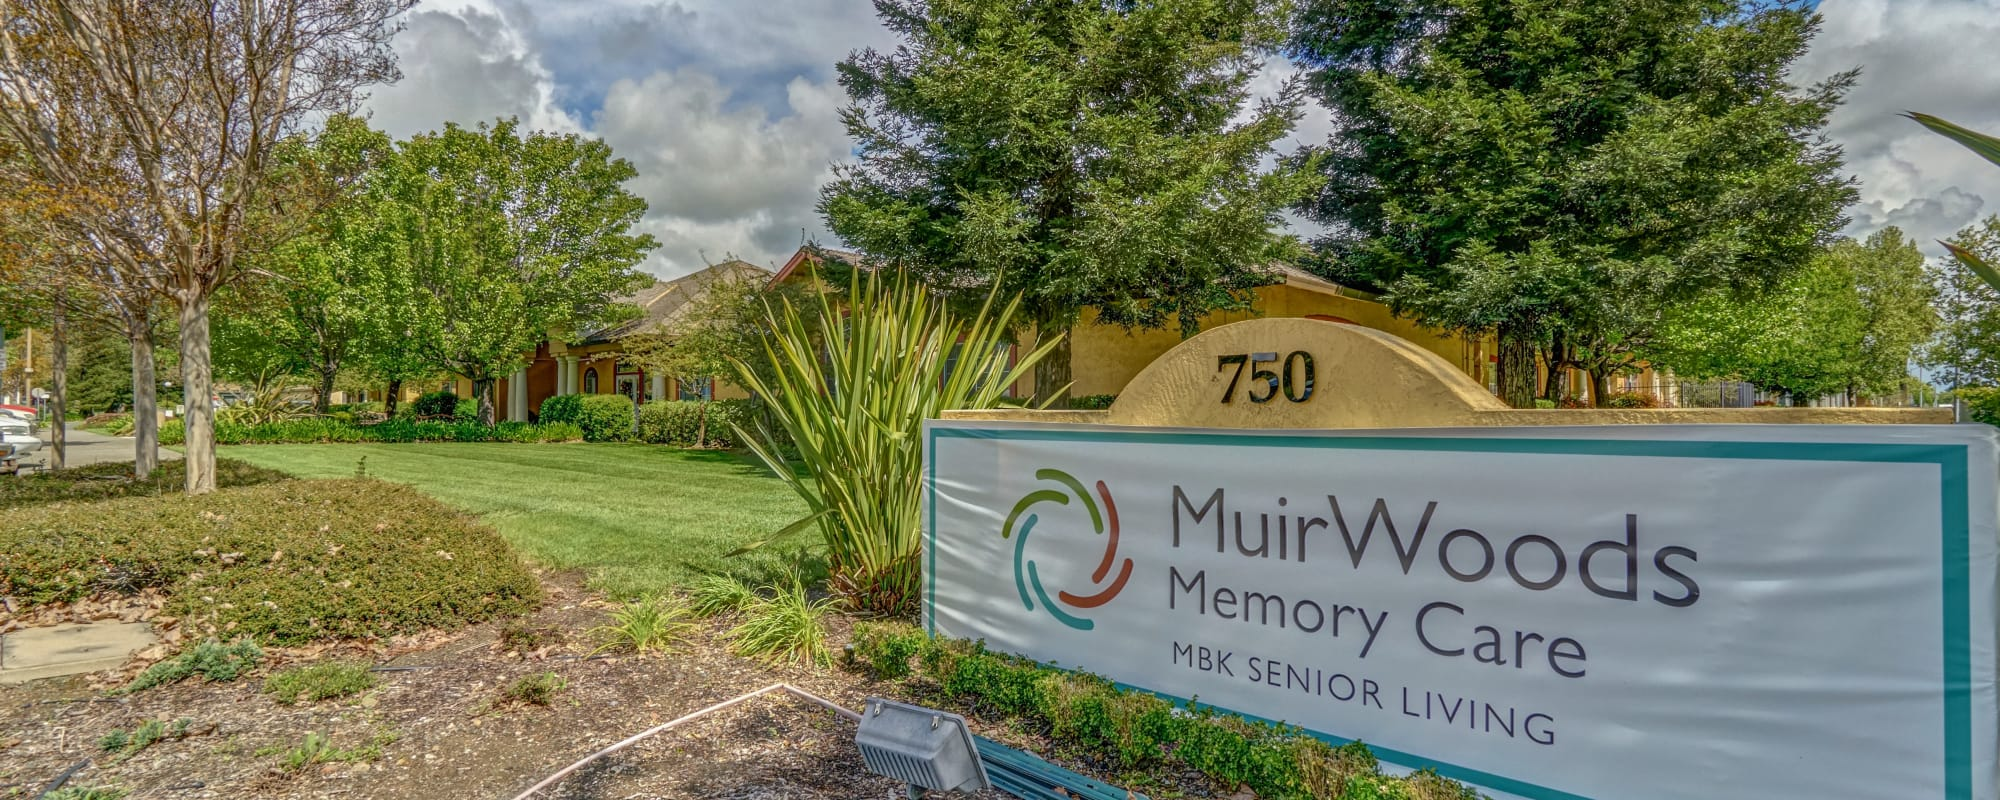 Welcome sign at MuirWoods Memory Care in Petaluma, California